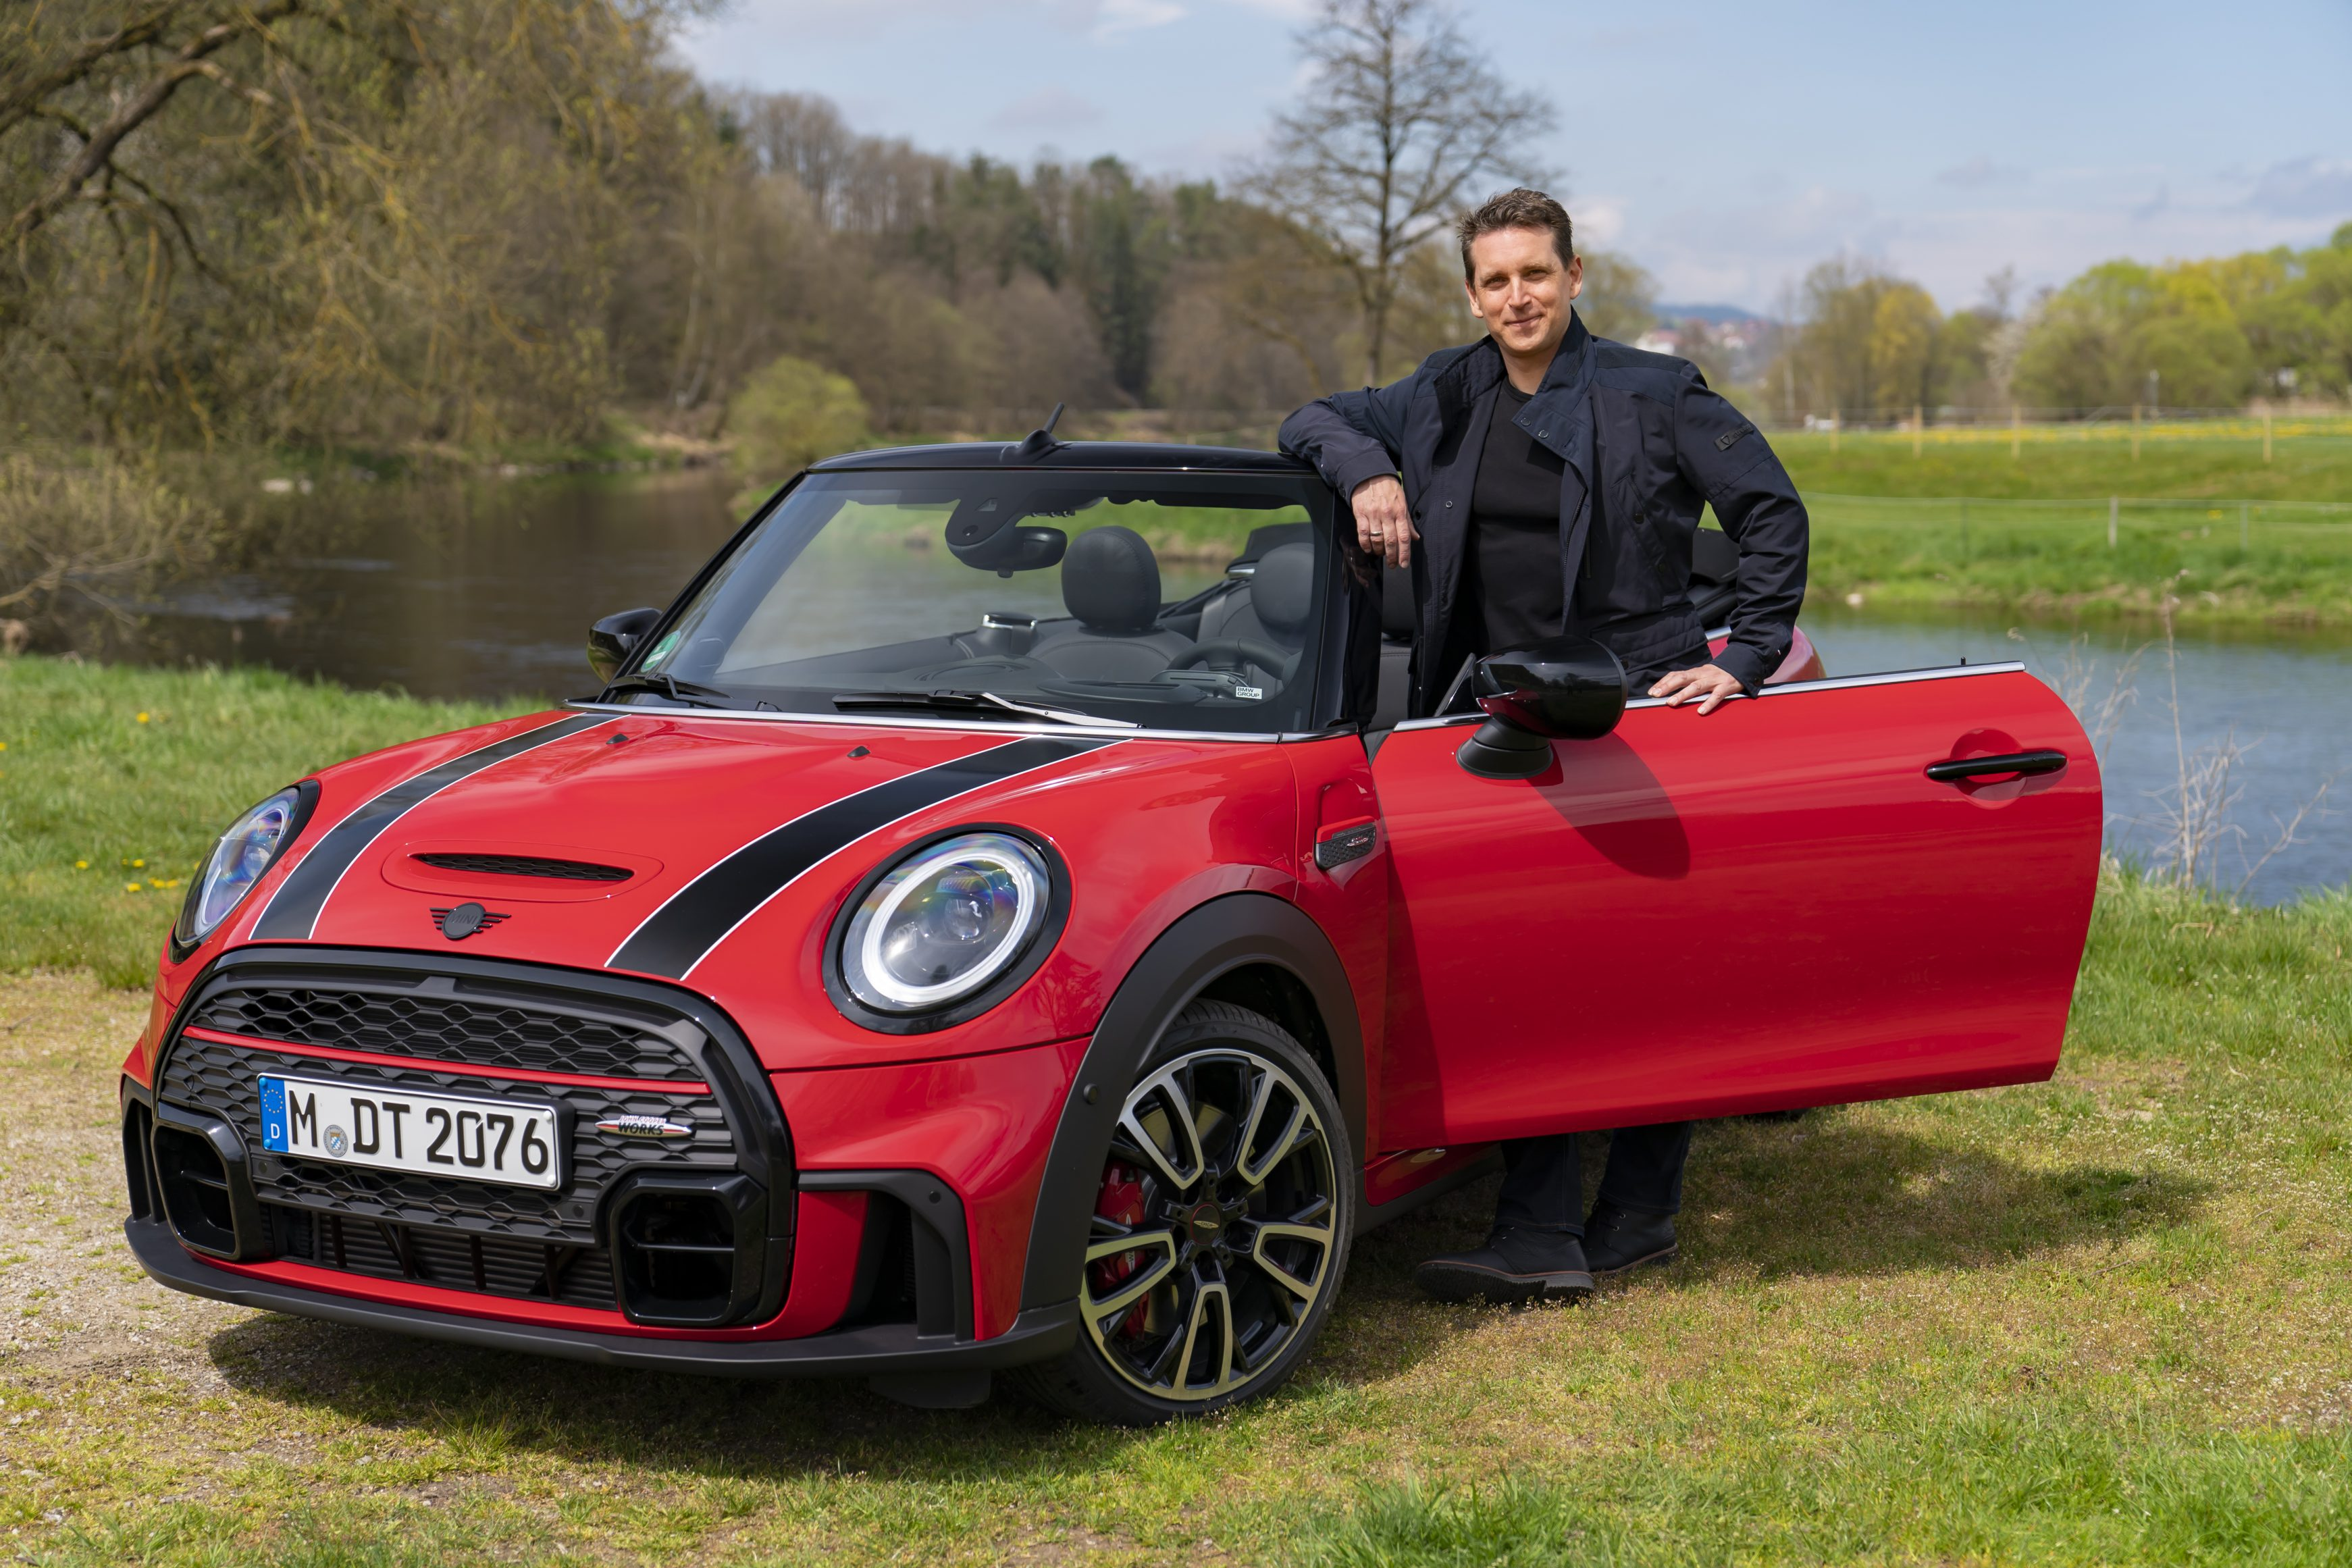 Best affordable sports cars in 2021 - Mini Convertible